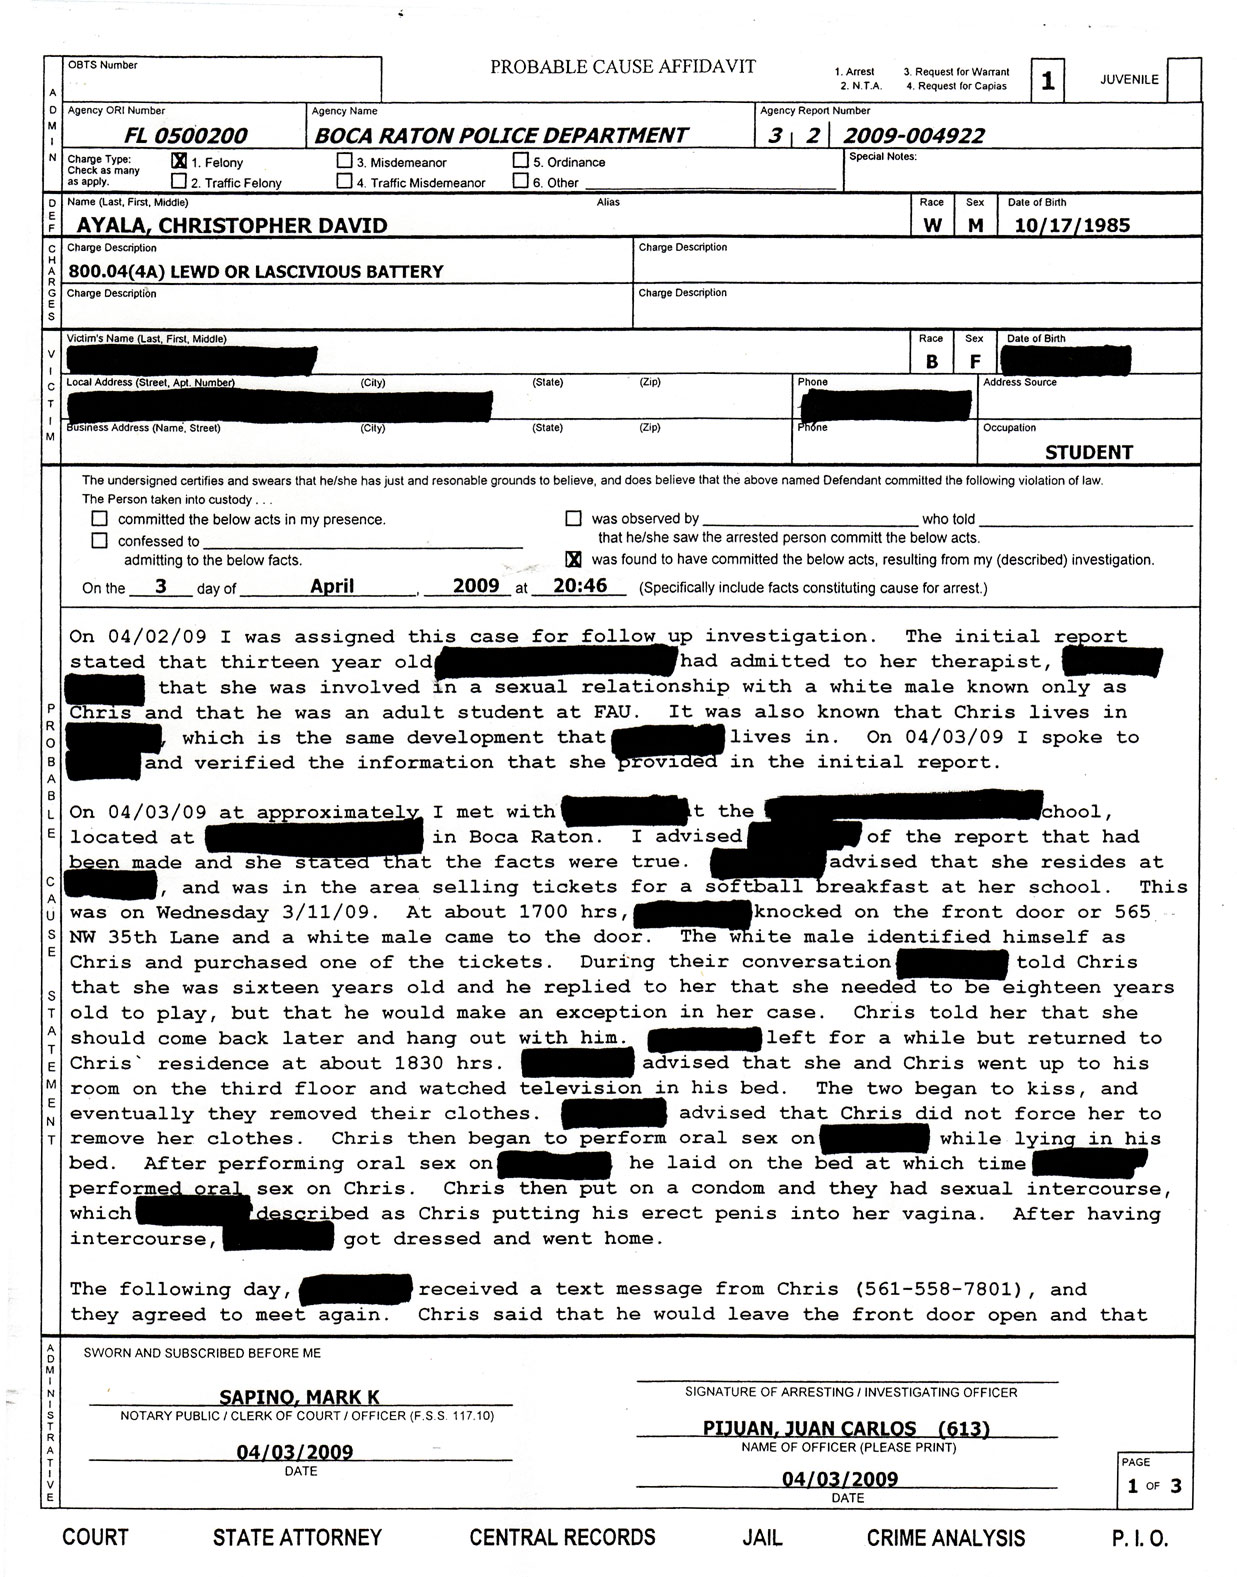 Police Records Clerk Sample Resume Google Image Result For Httpsouthwerk.files.wordpress201102 .